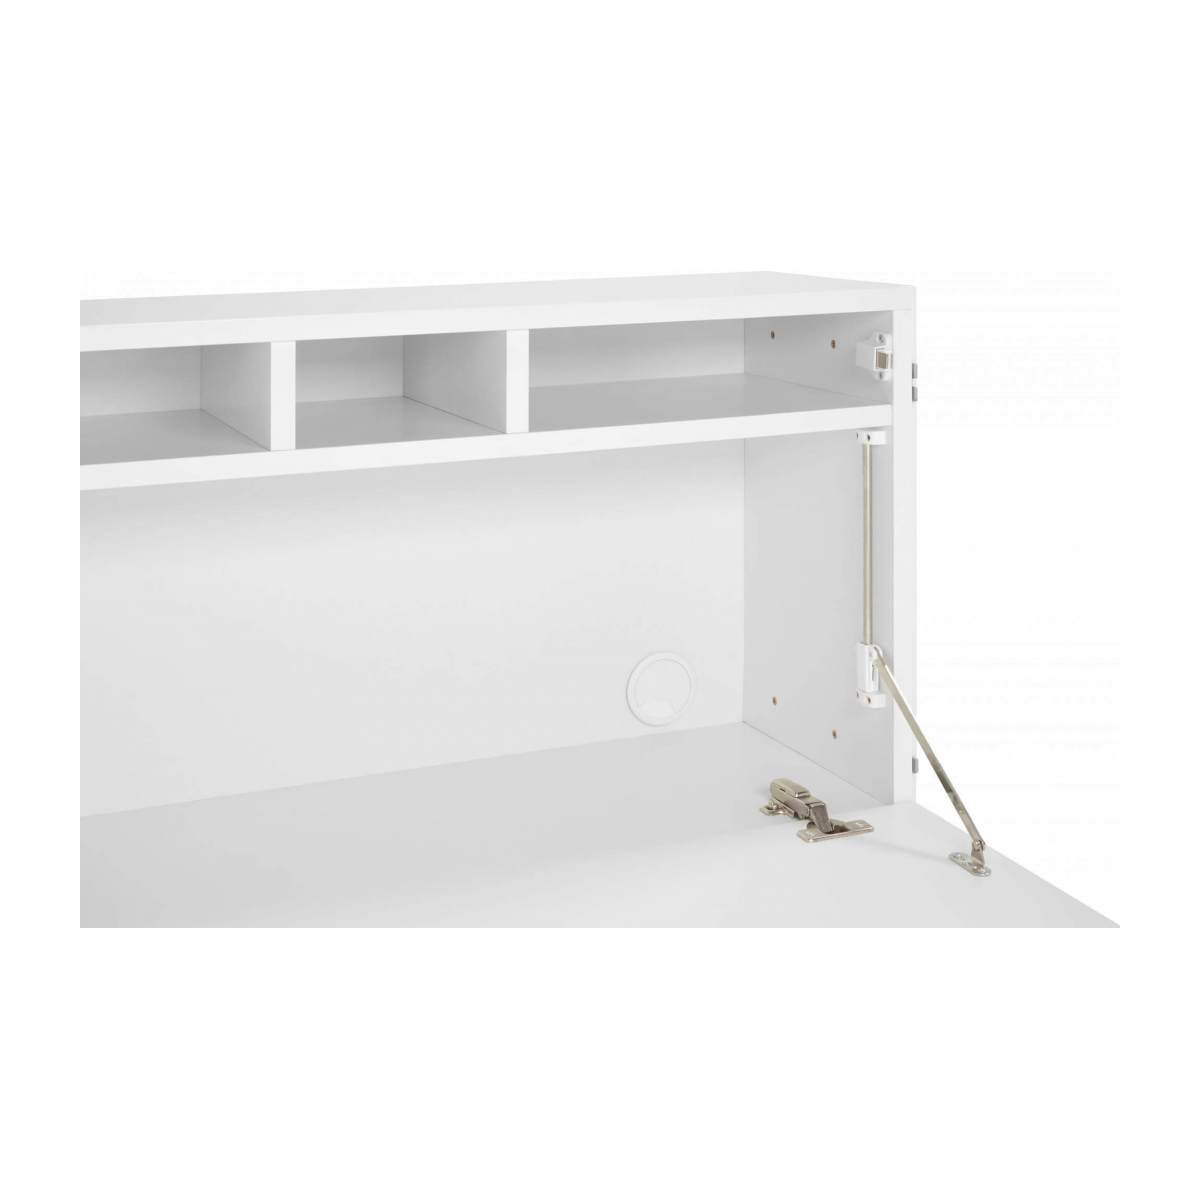 Lacquered white oak desk to hang n°7